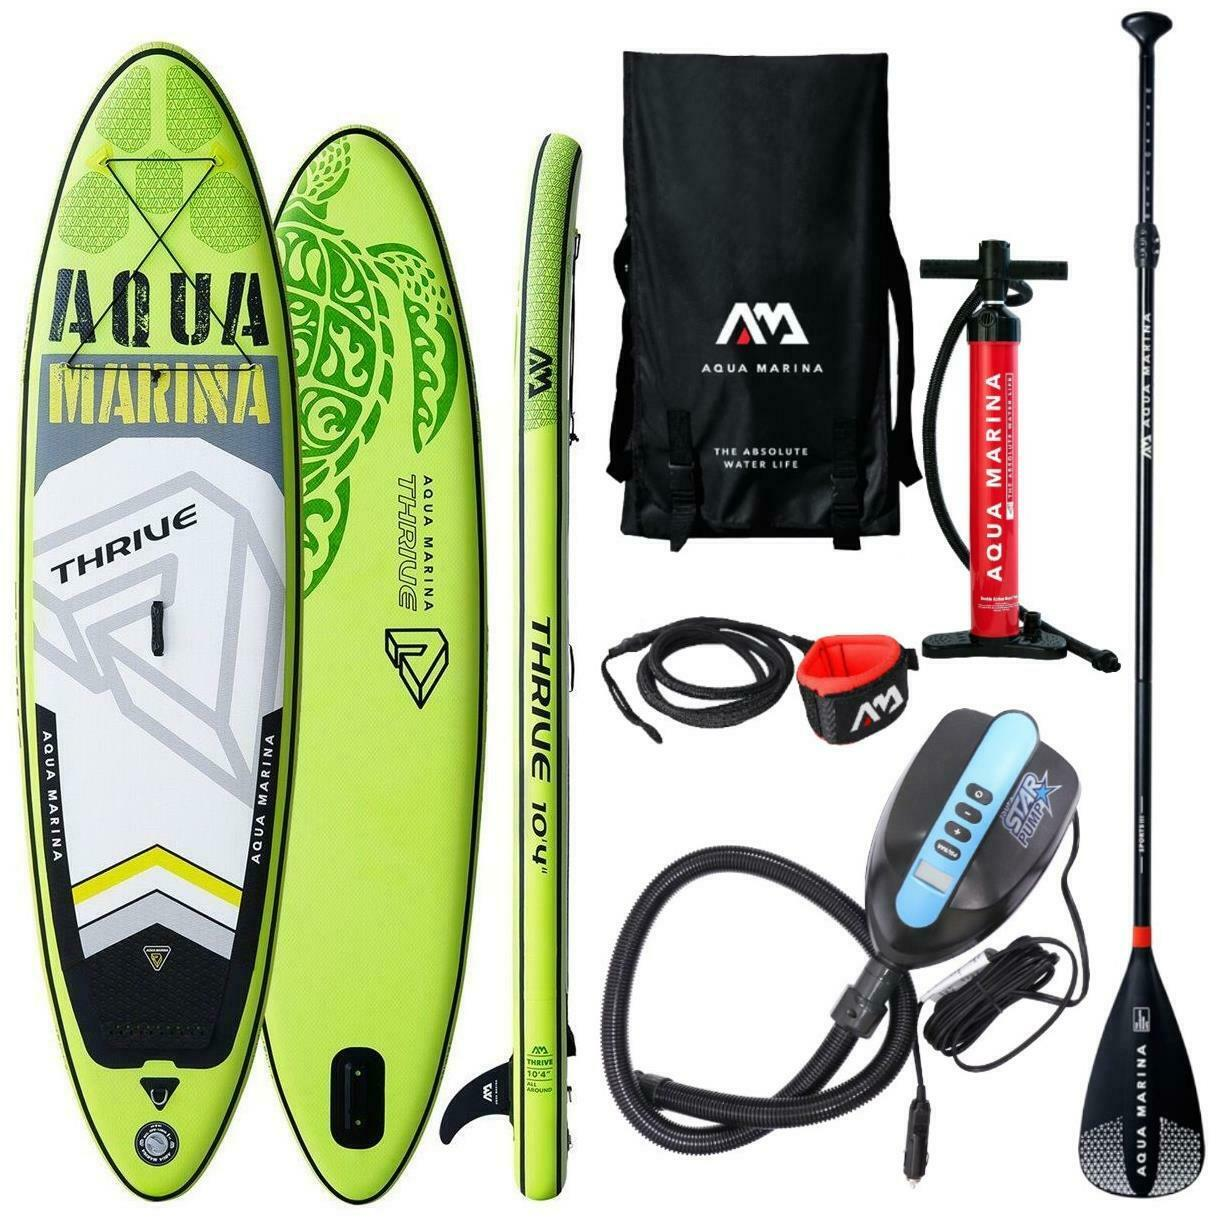 Aqua Marina thrive 10.6 315 cm sup inflatable stand up paddle board Sport Paddle